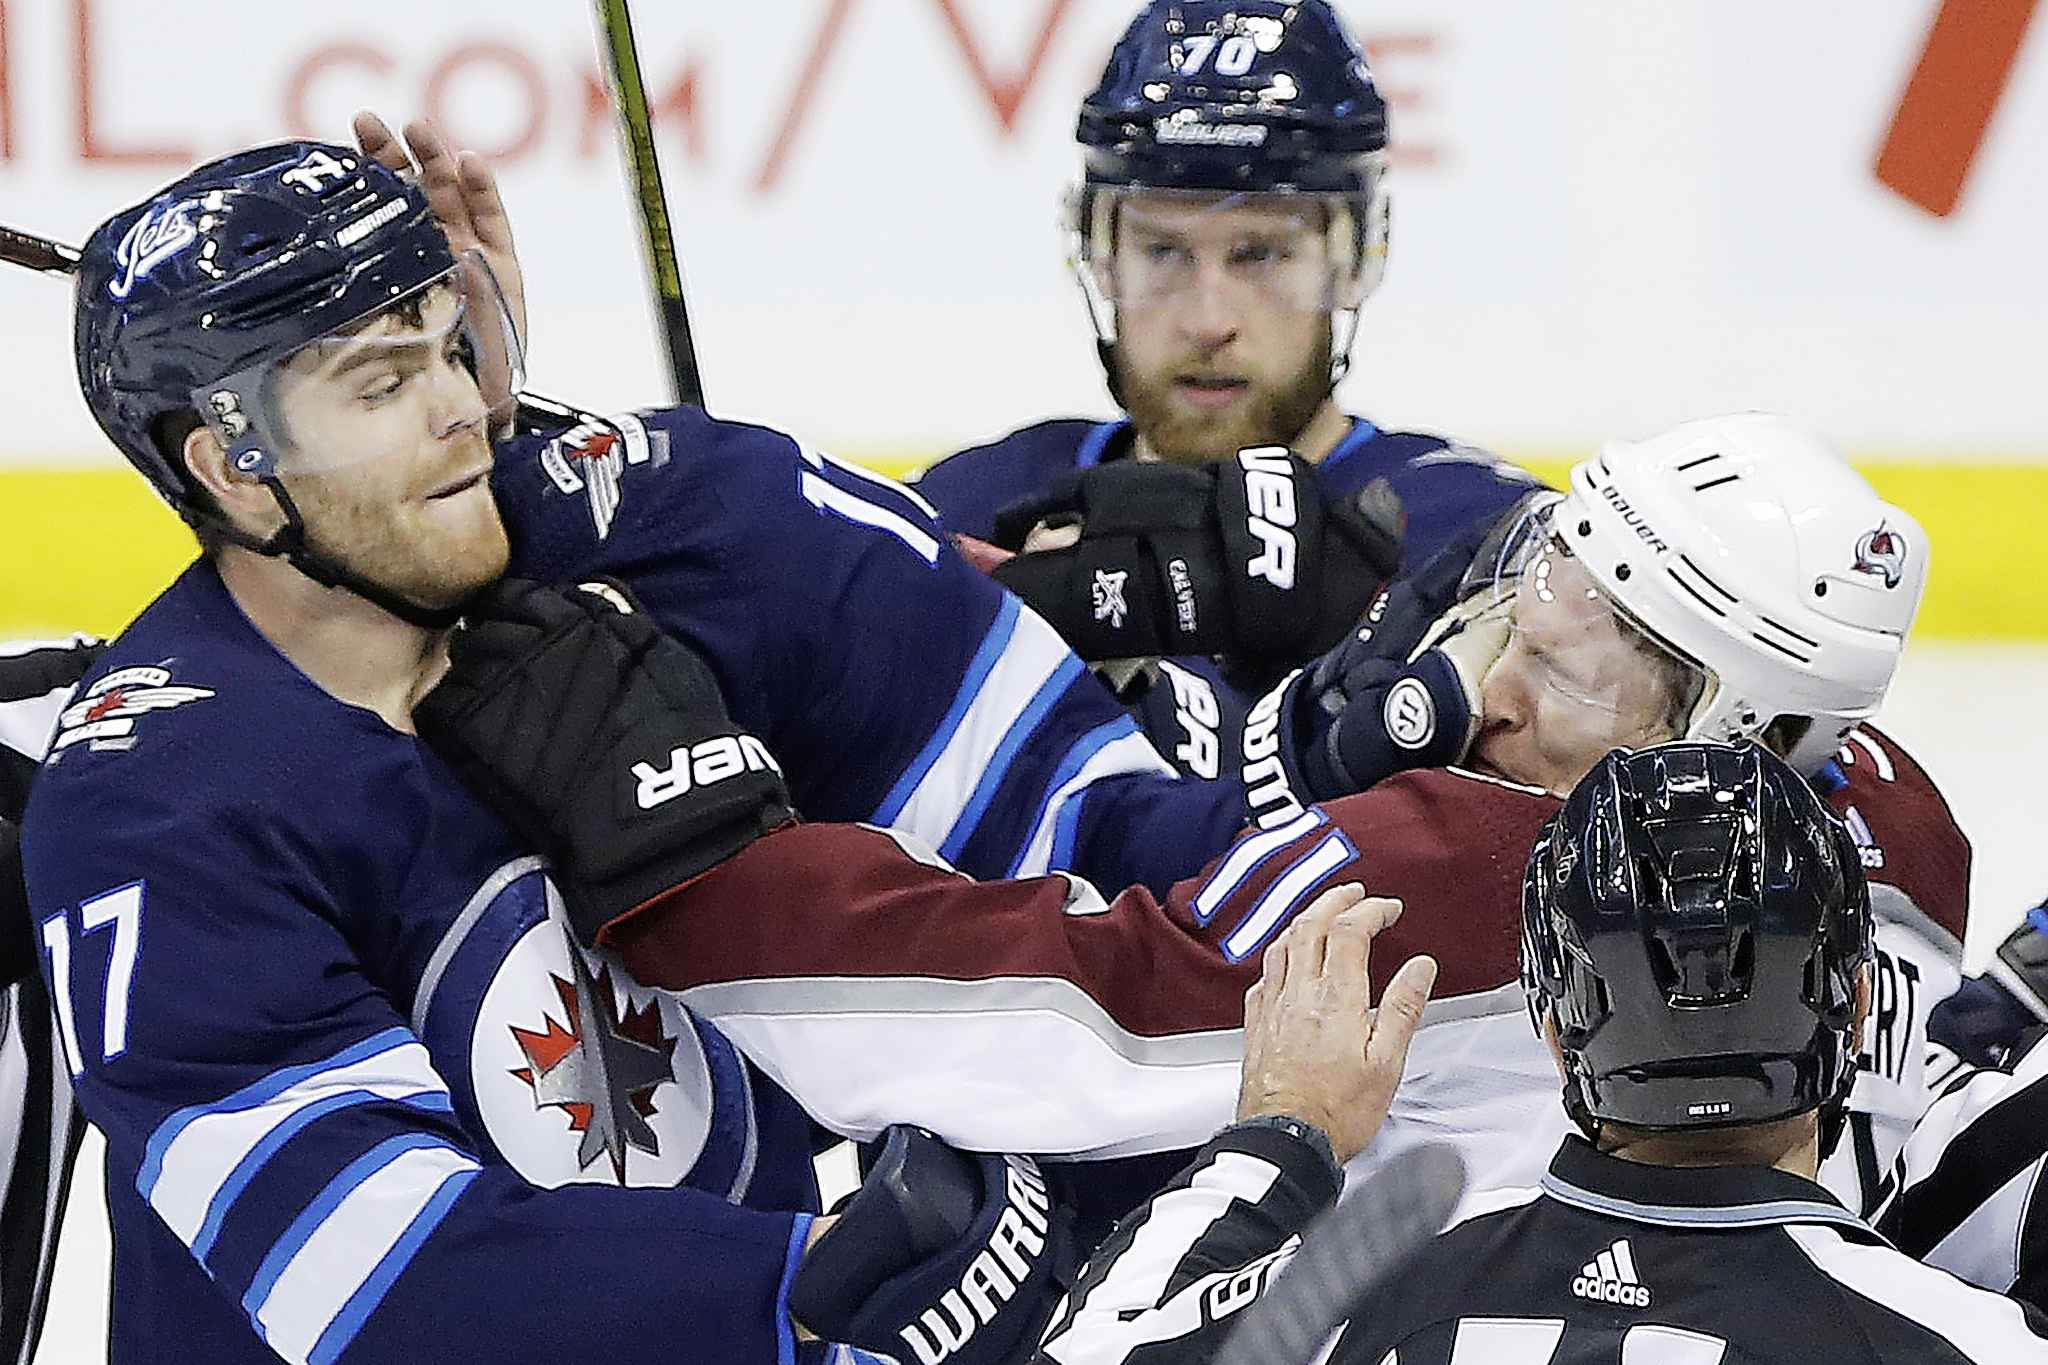 Winnipeg Jets' Adam Lowry lands one to the face of Colorado Avalanche's Matt Calvert as Jets' Joe Morrow  looks on during the second period.